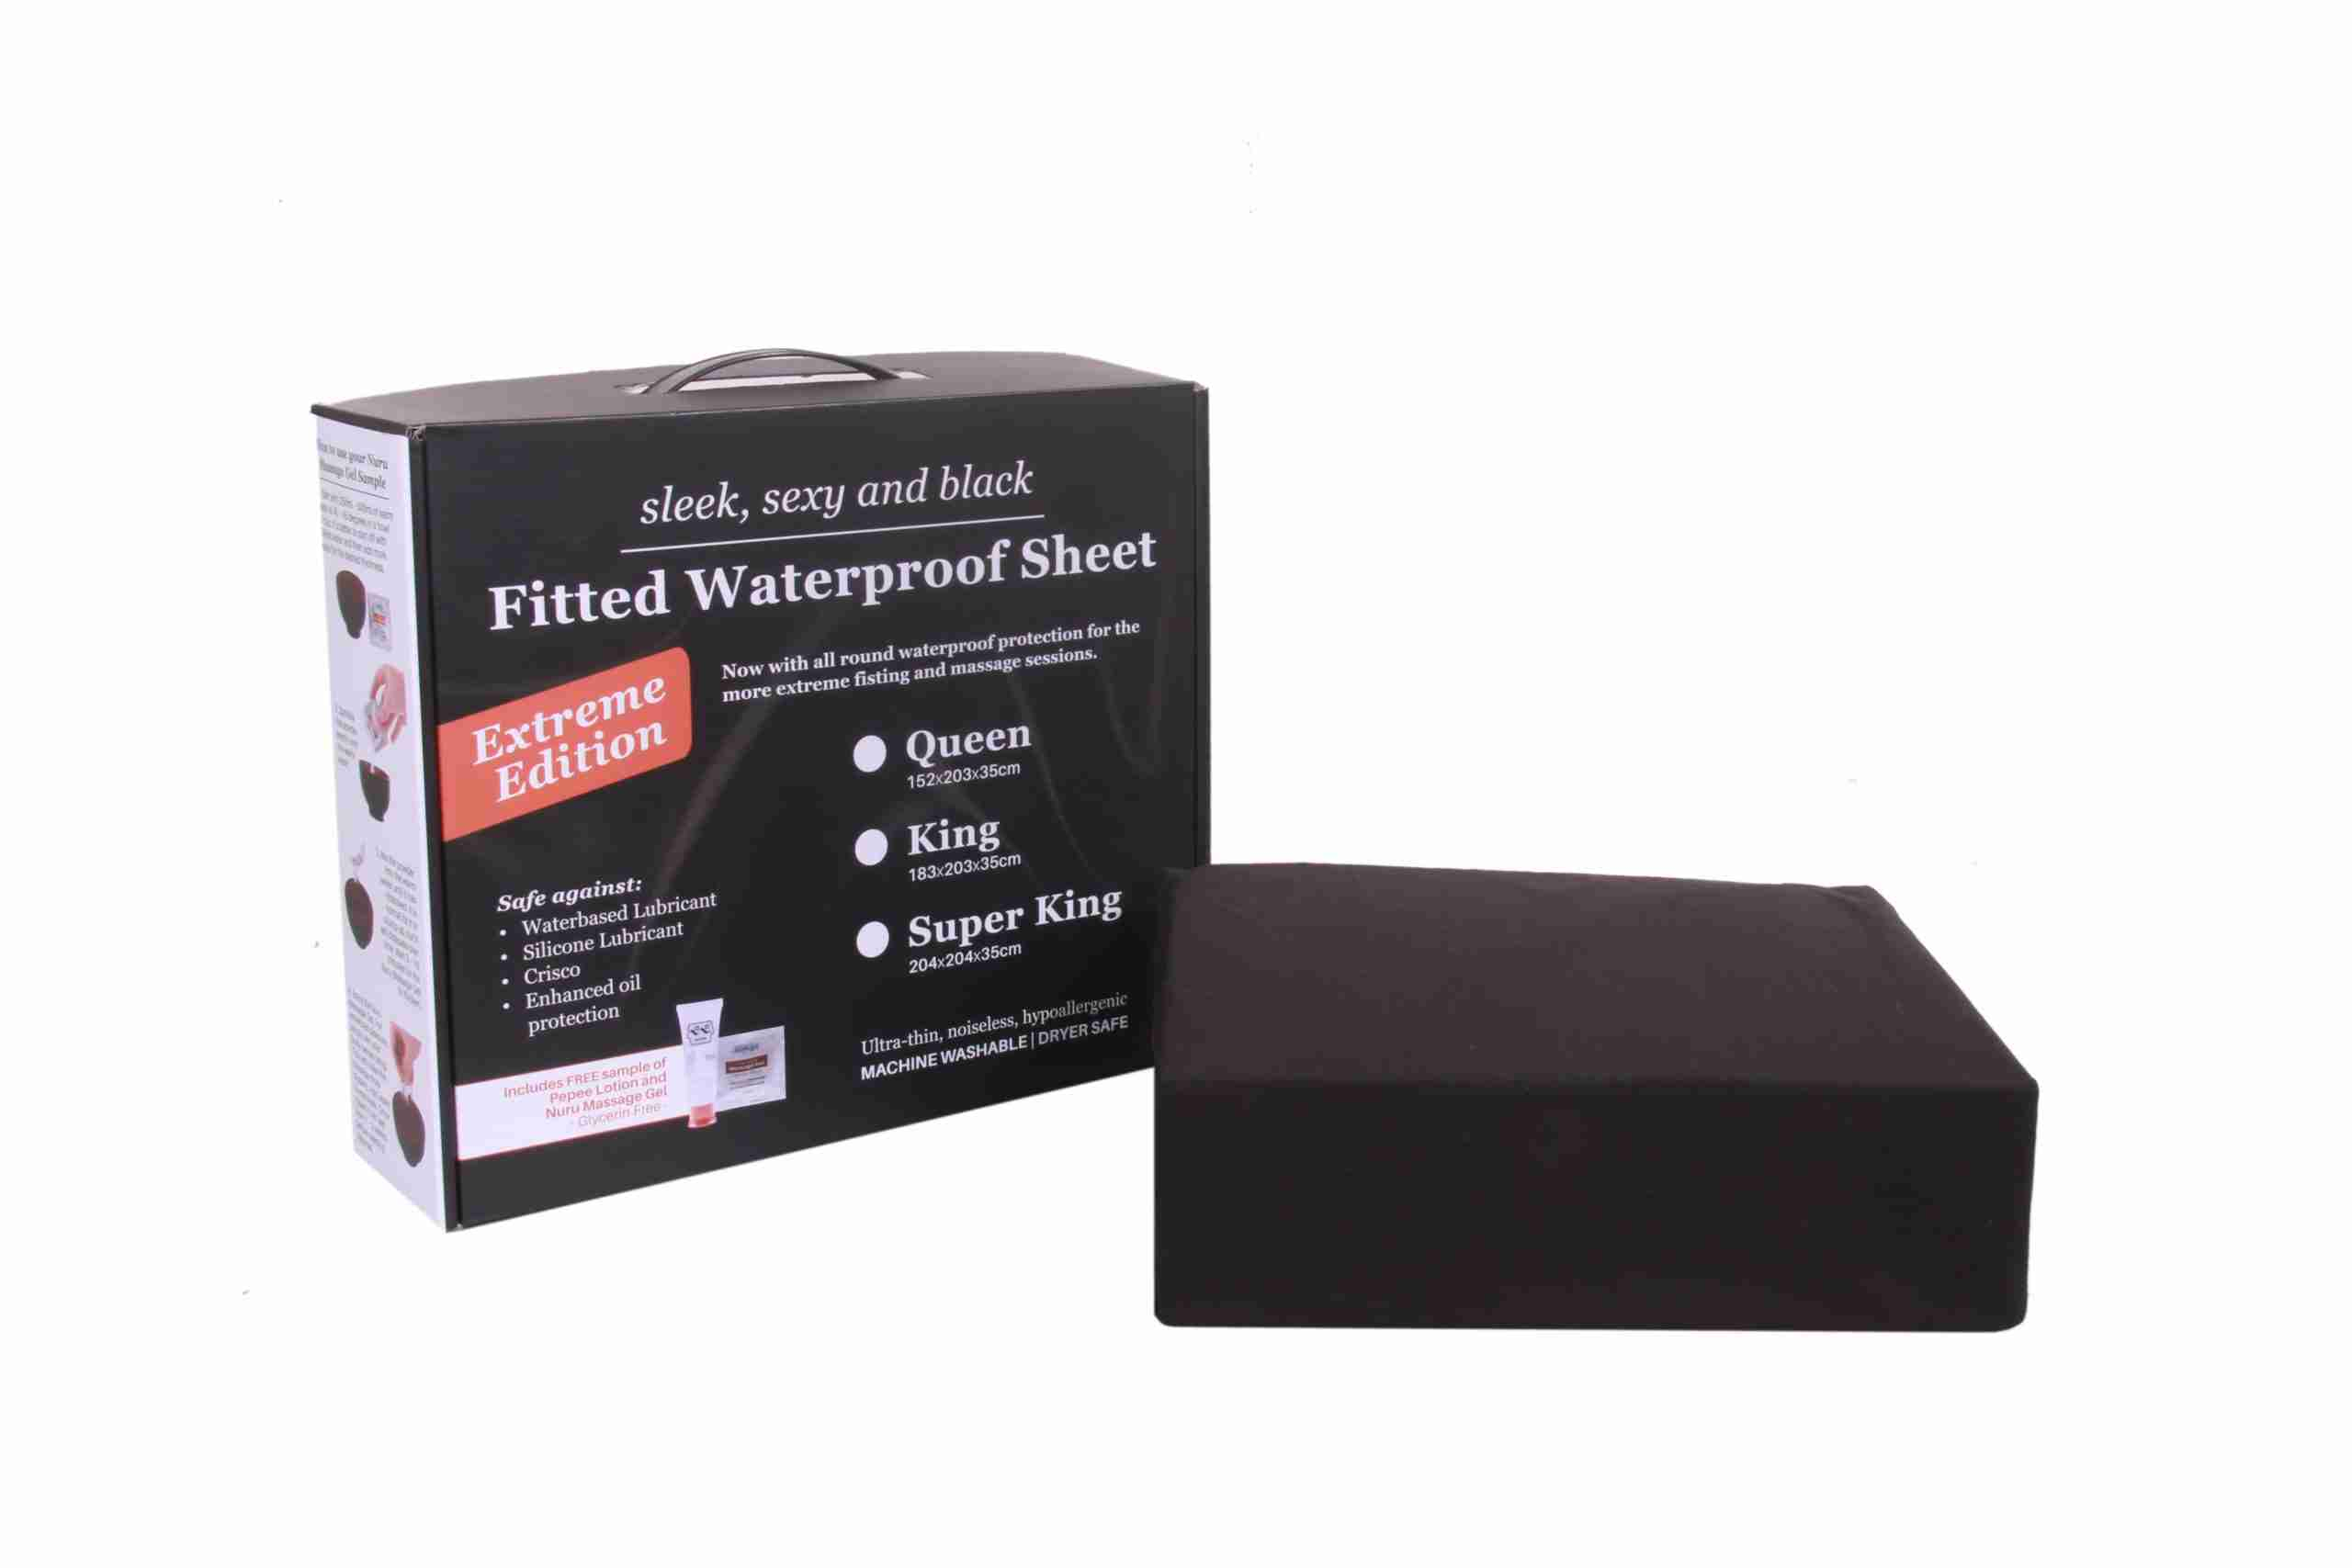 Eroticgel Australia Extreme Edition Black Waterproof Bedding Fitted Sheet